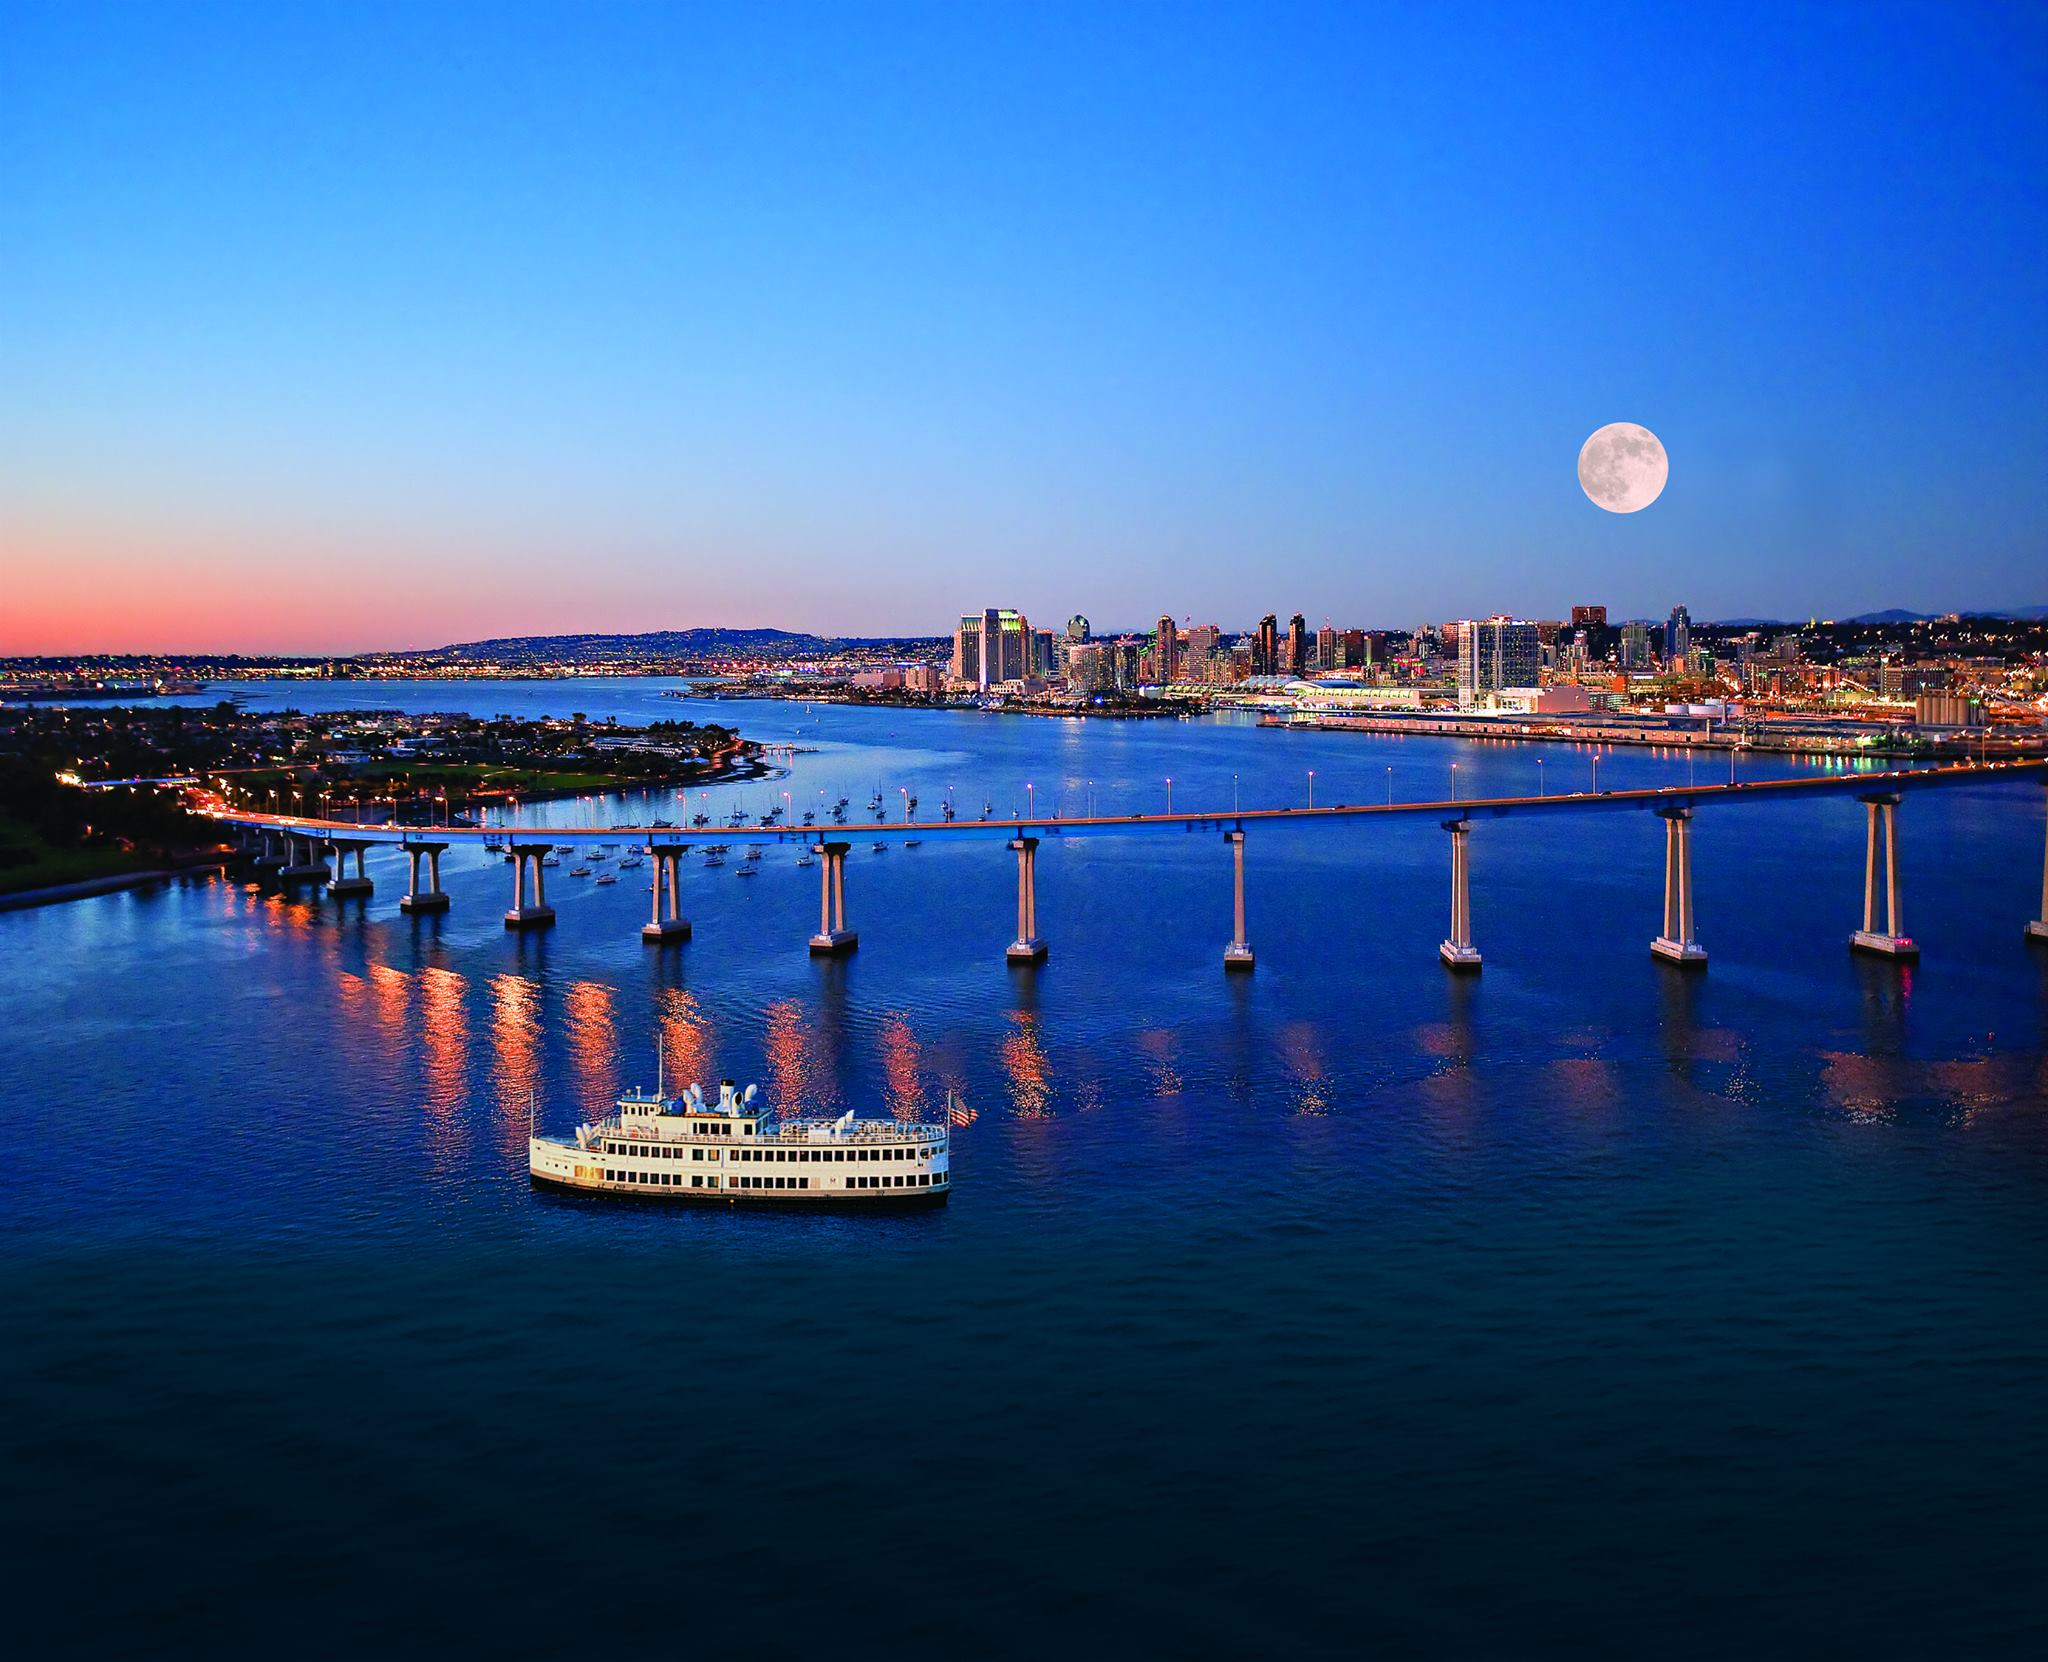 A beautiful Full Moon in San Diego Bay